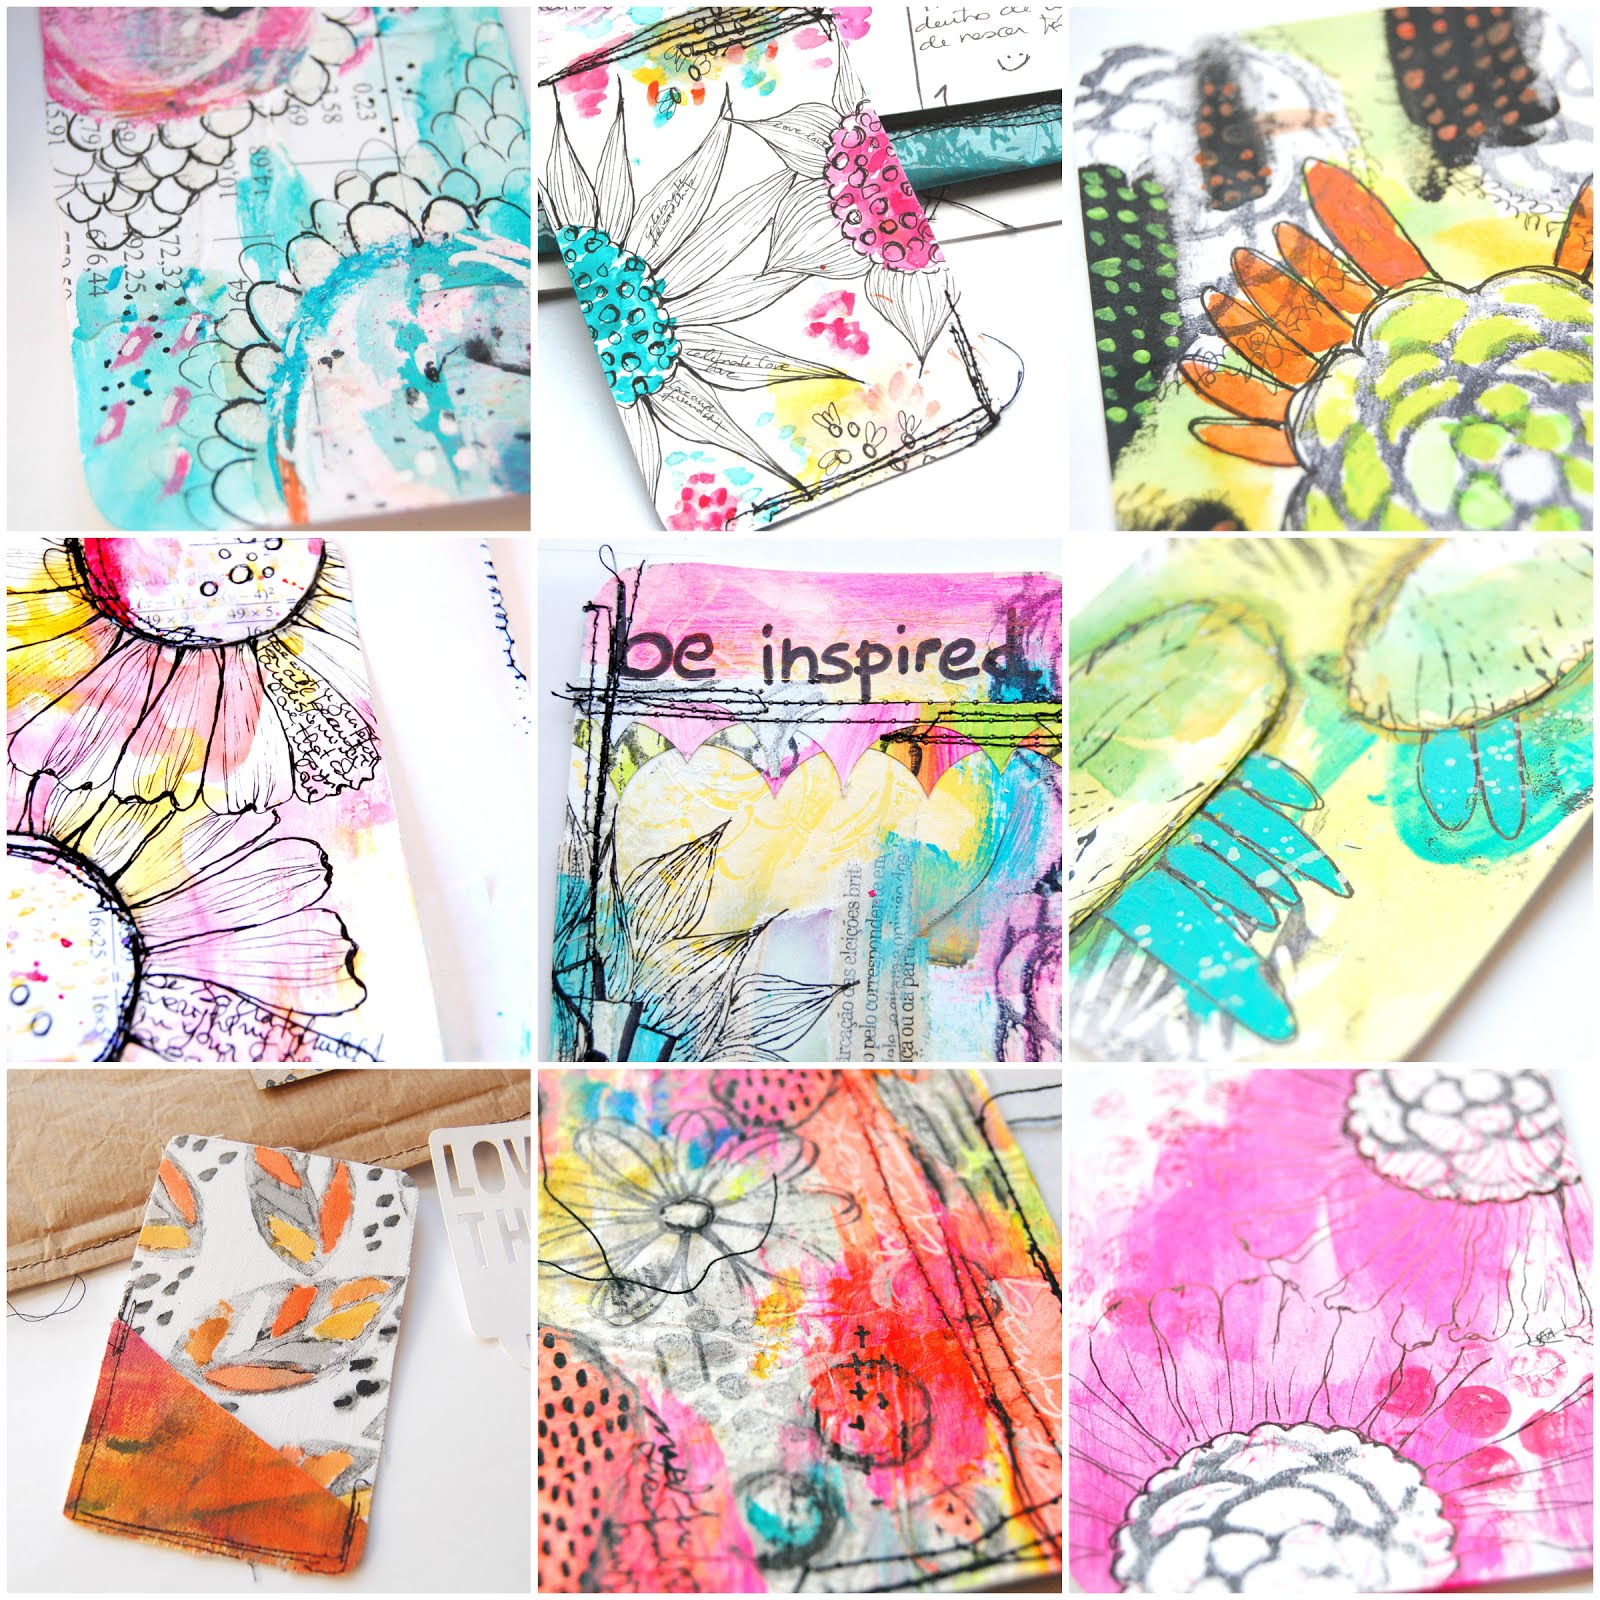 Pocket art cards - my process